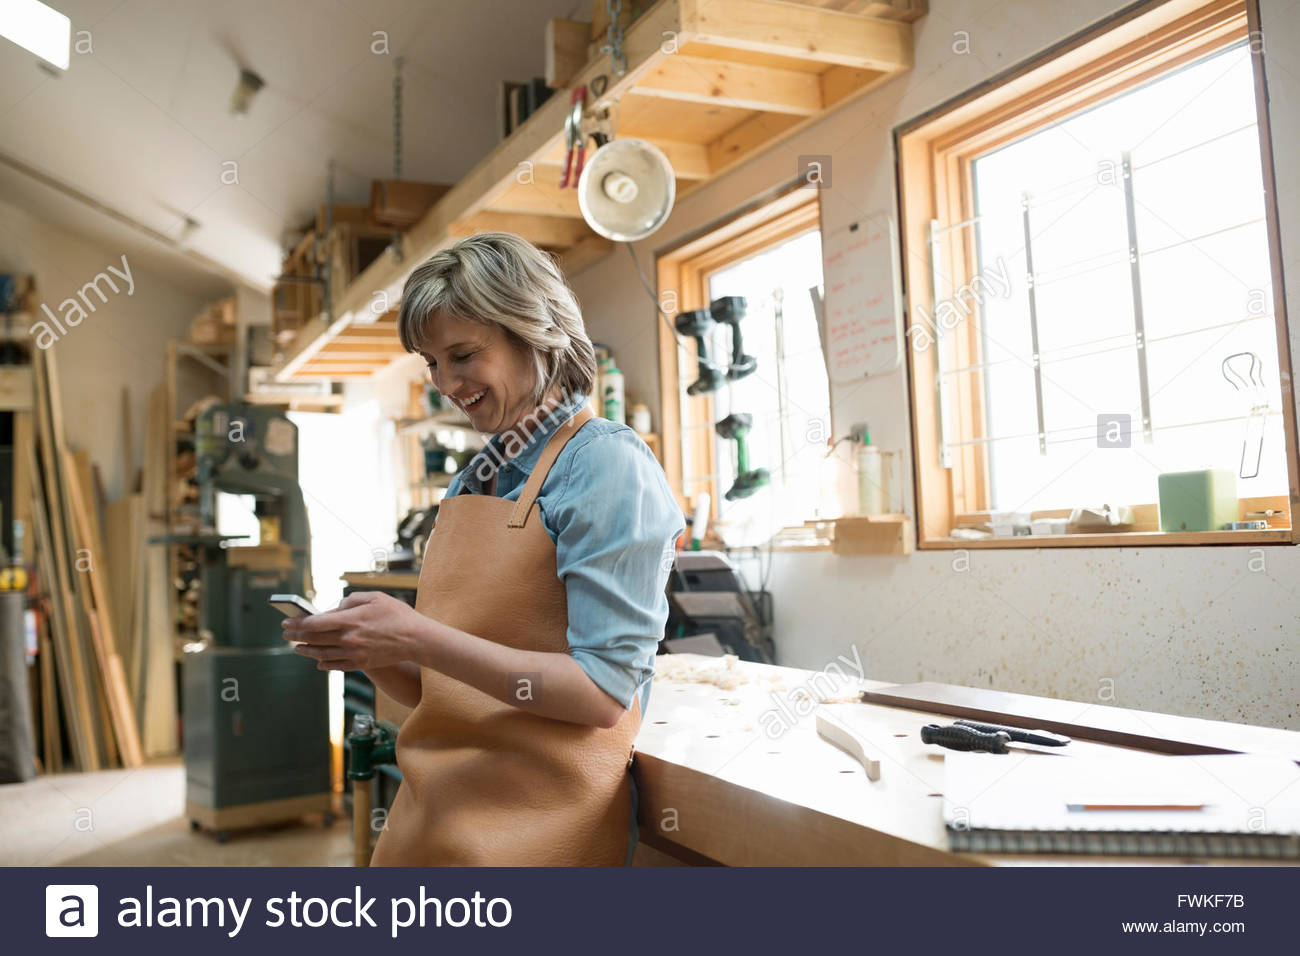 Female carpenter using cell phone in workshop Photo Stock